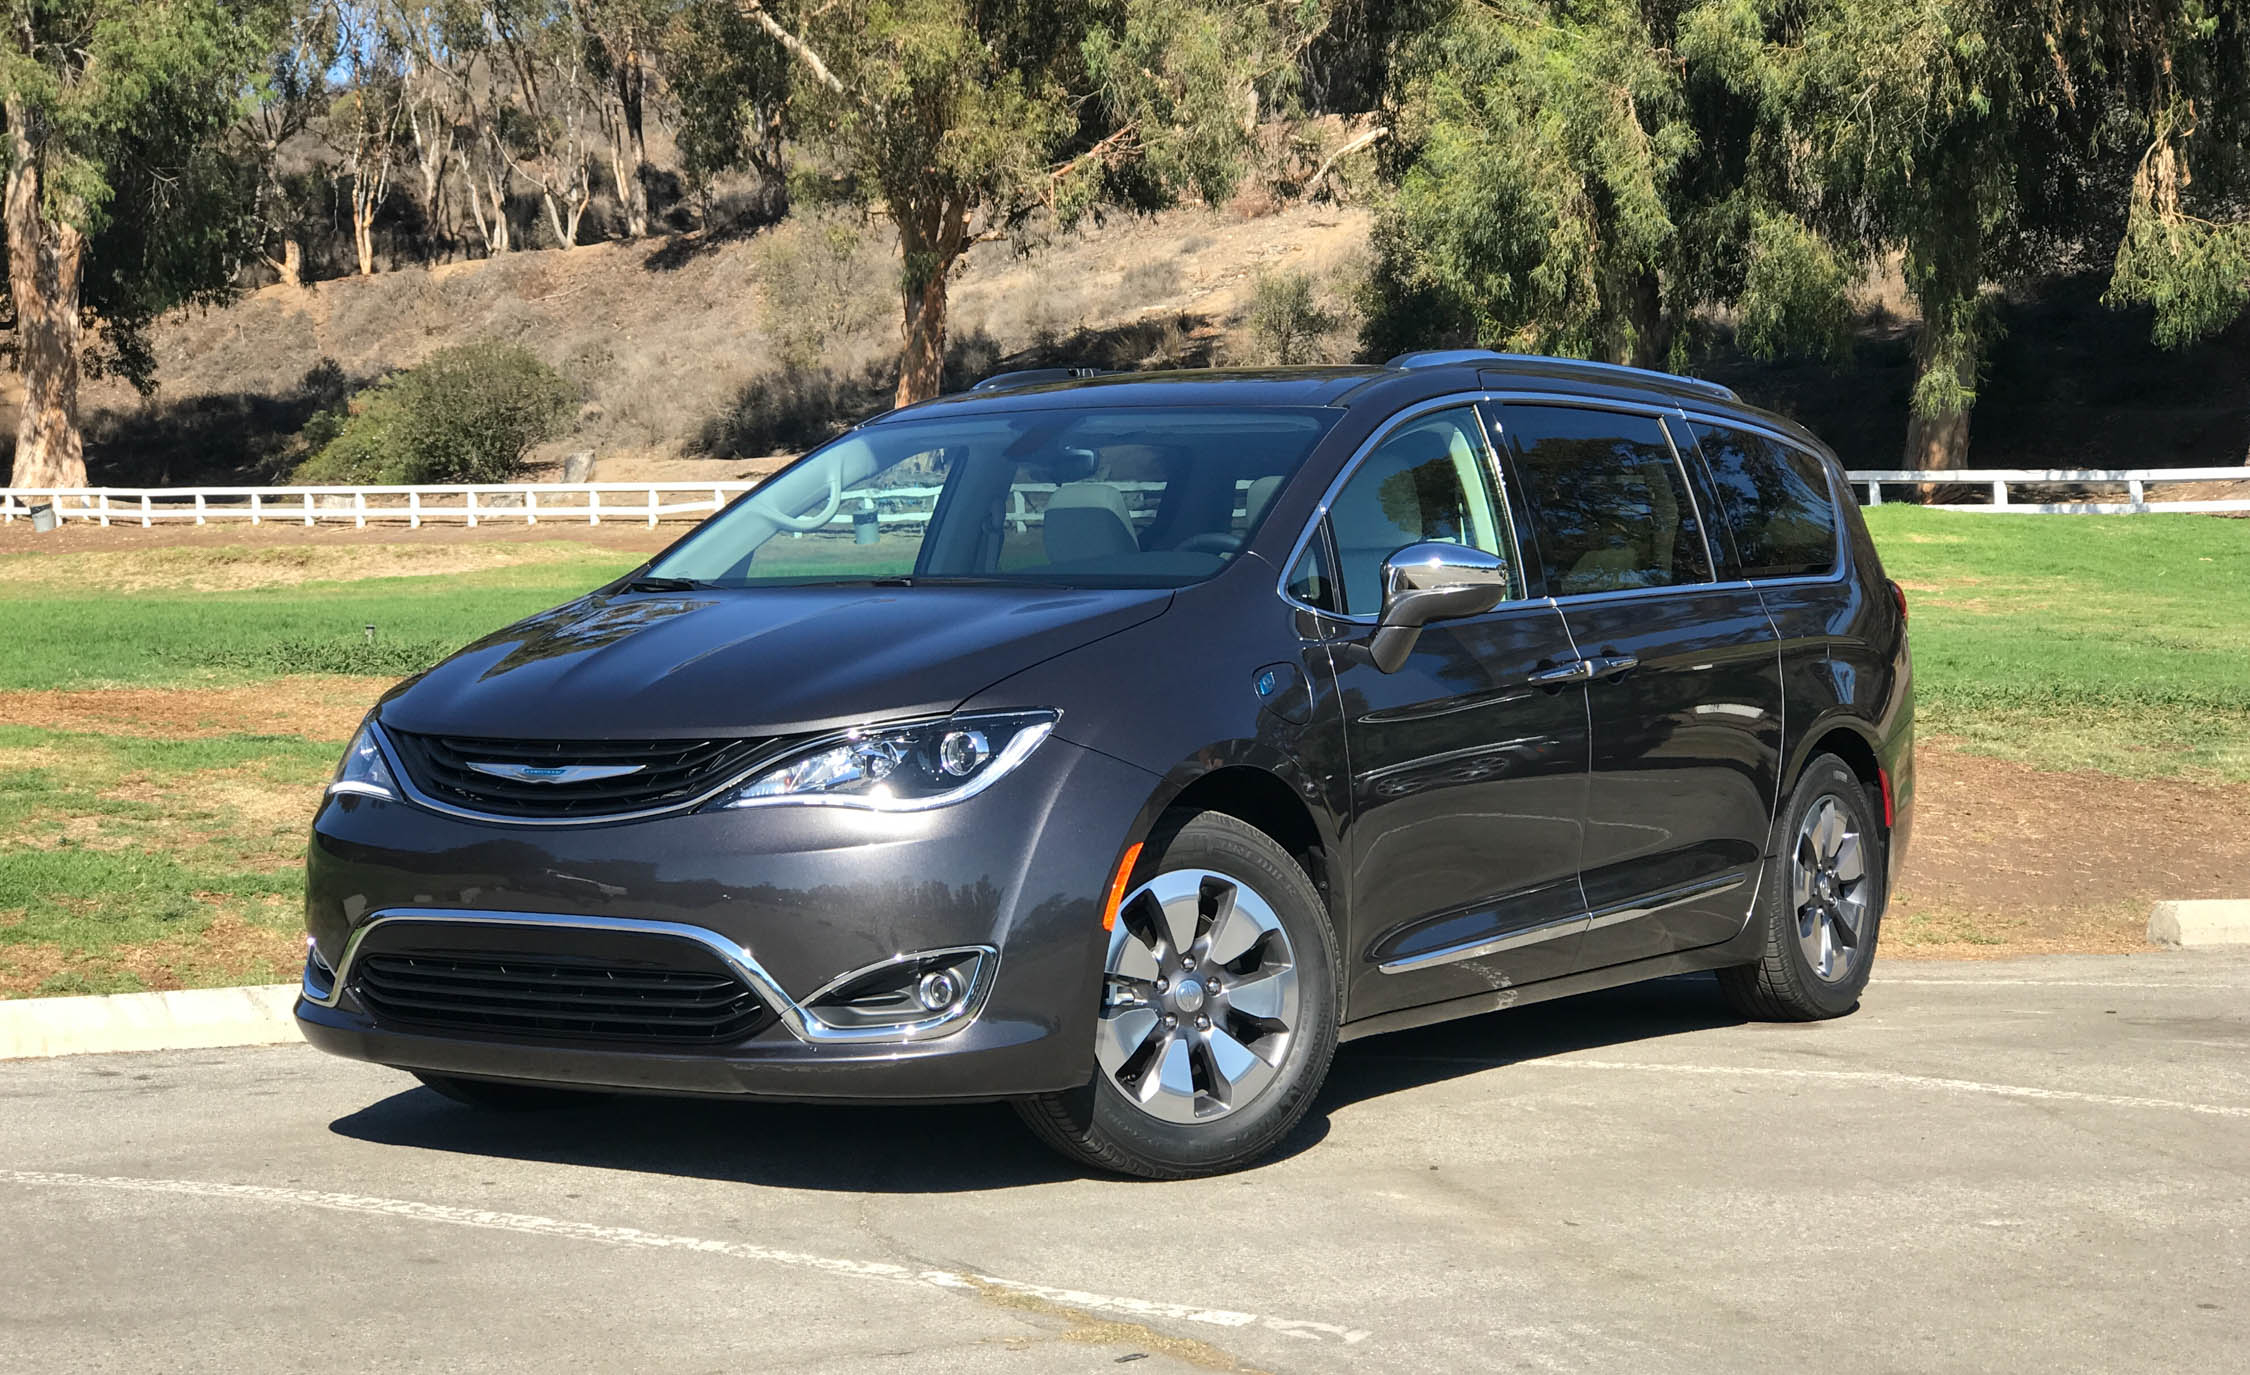 2017 Chrysler Pacifica Hybrid (Photo 10 of 10)